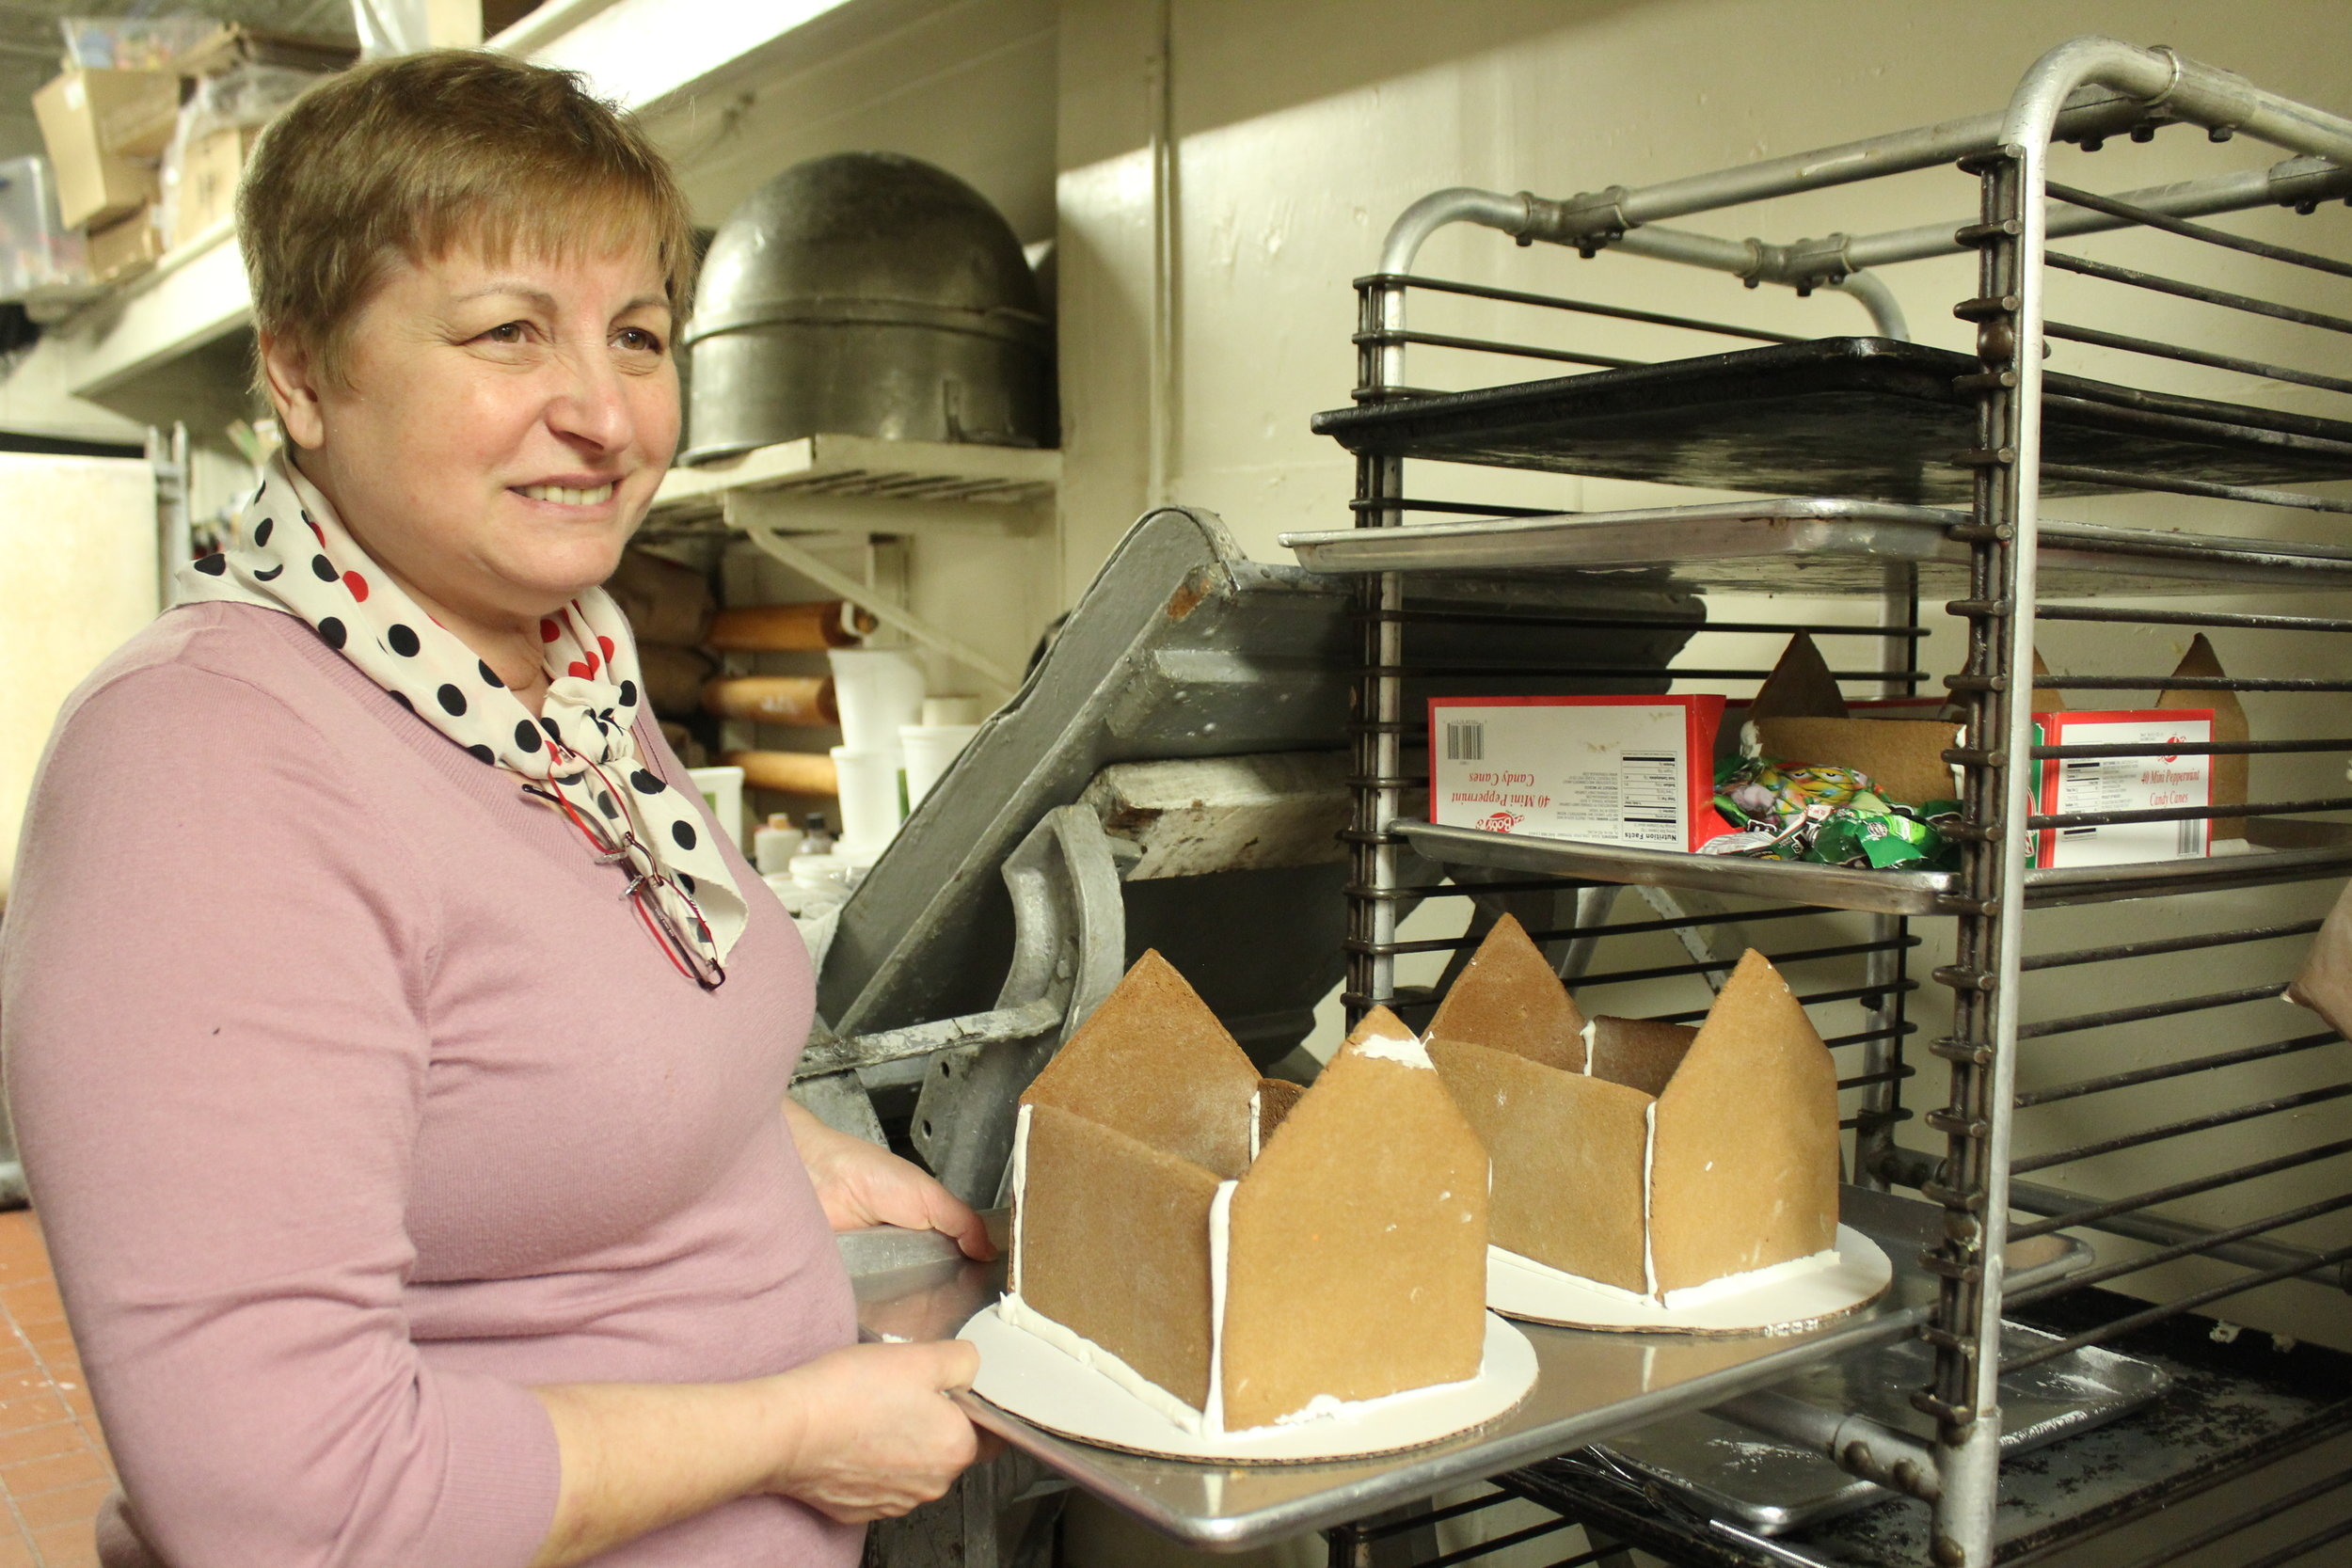 Carmela Lucciola showing off her gingerbread house construction in the kitchen of Egidio's